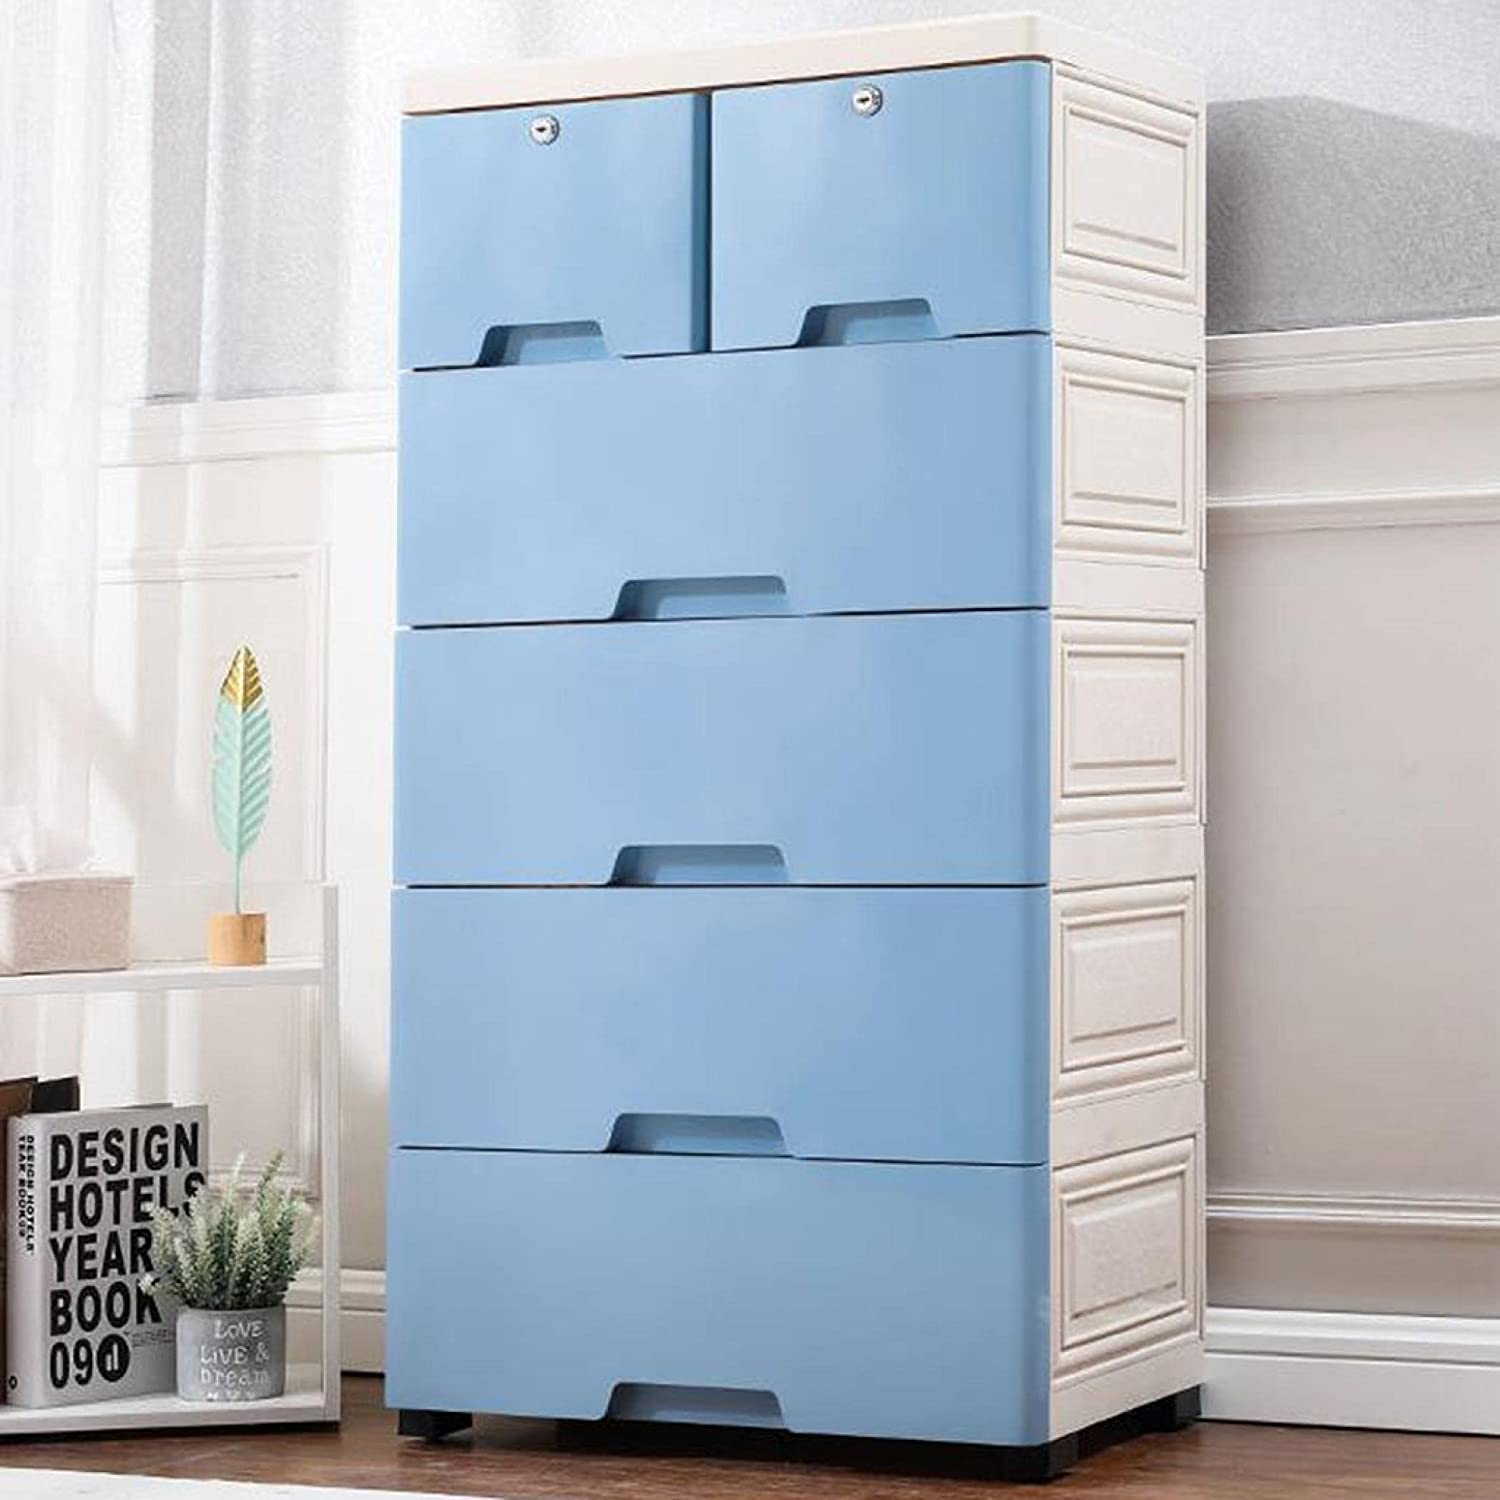 Plastic Storage Drawers for - Safety and trust Mail order Clothes Ca Dresser